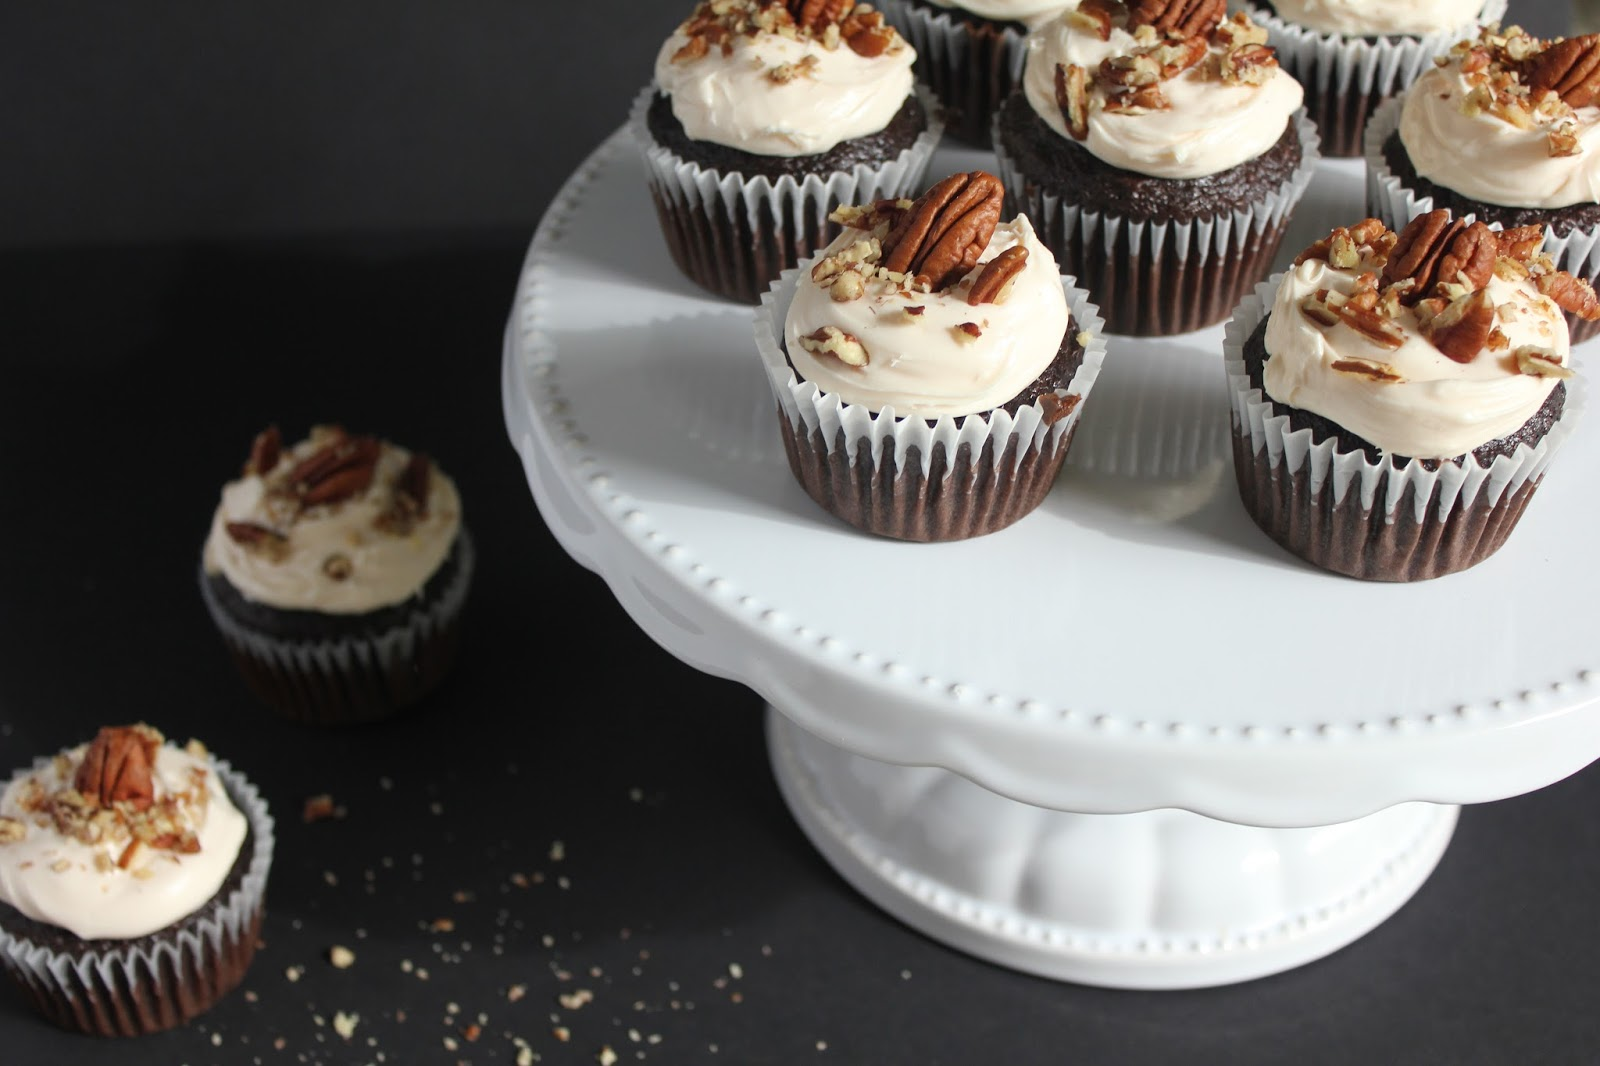 Holiday Cookbook - Thanksgiving Dessert Recipe: Dark Chocolate Bourbon Cupcakes with Butter Pecan Frosting